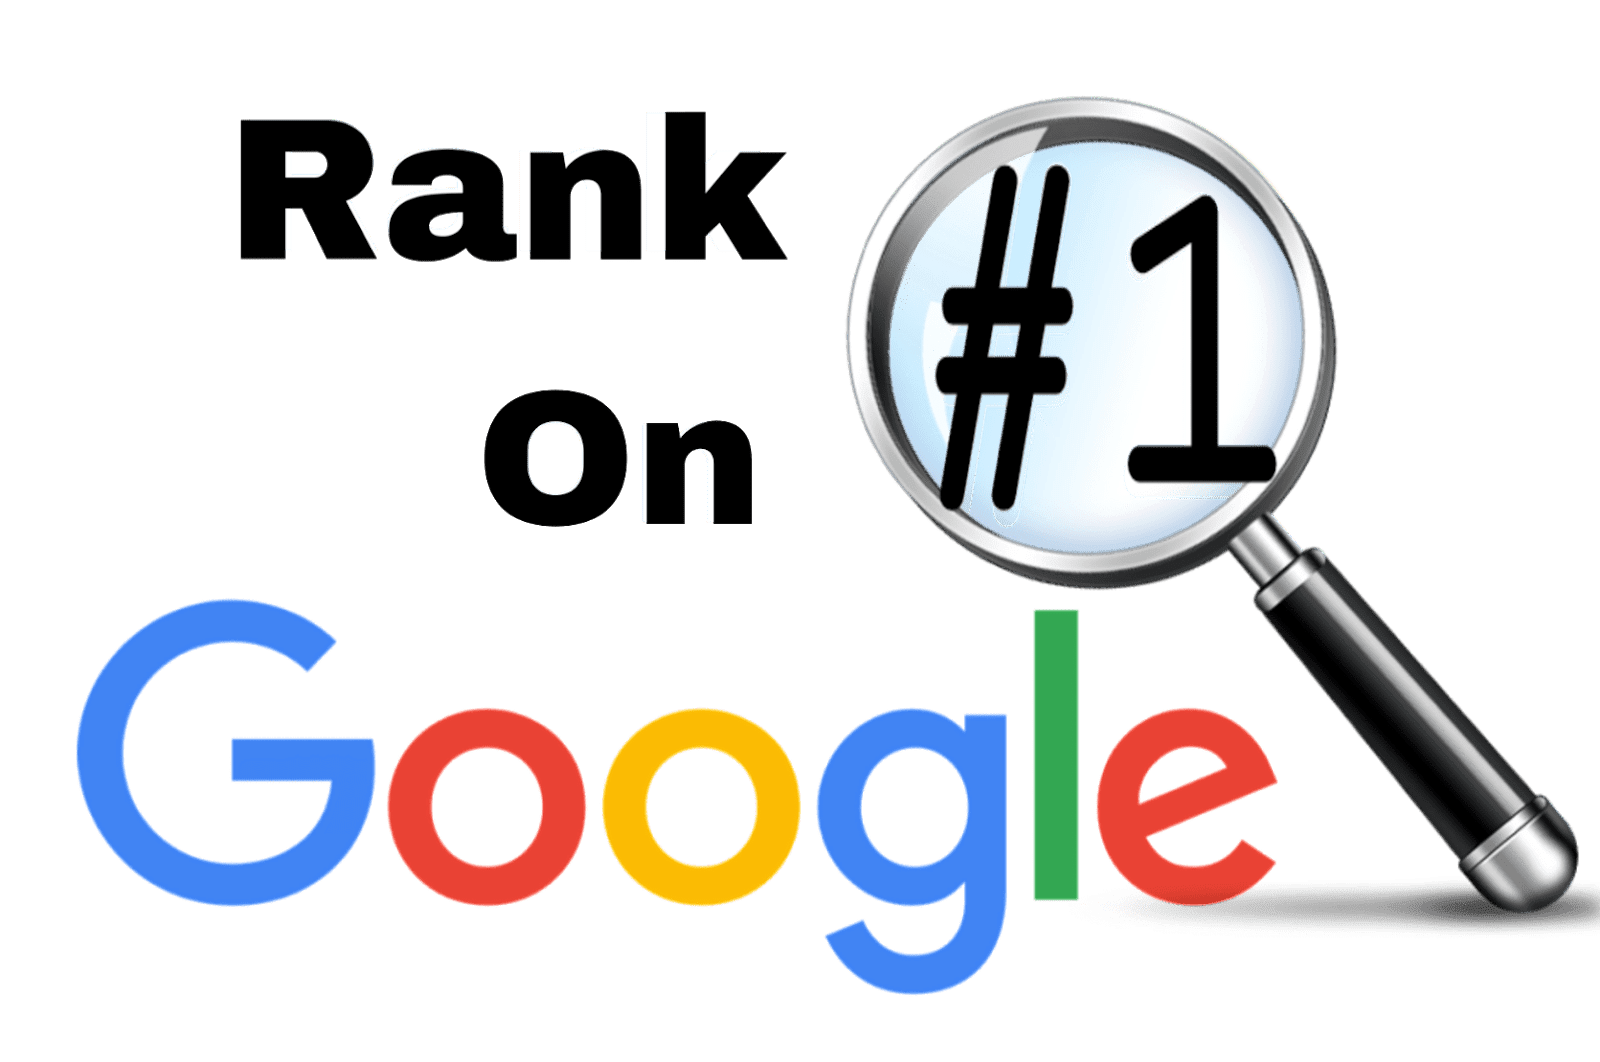 rank 1st on google saminus private limited hisar haryana india